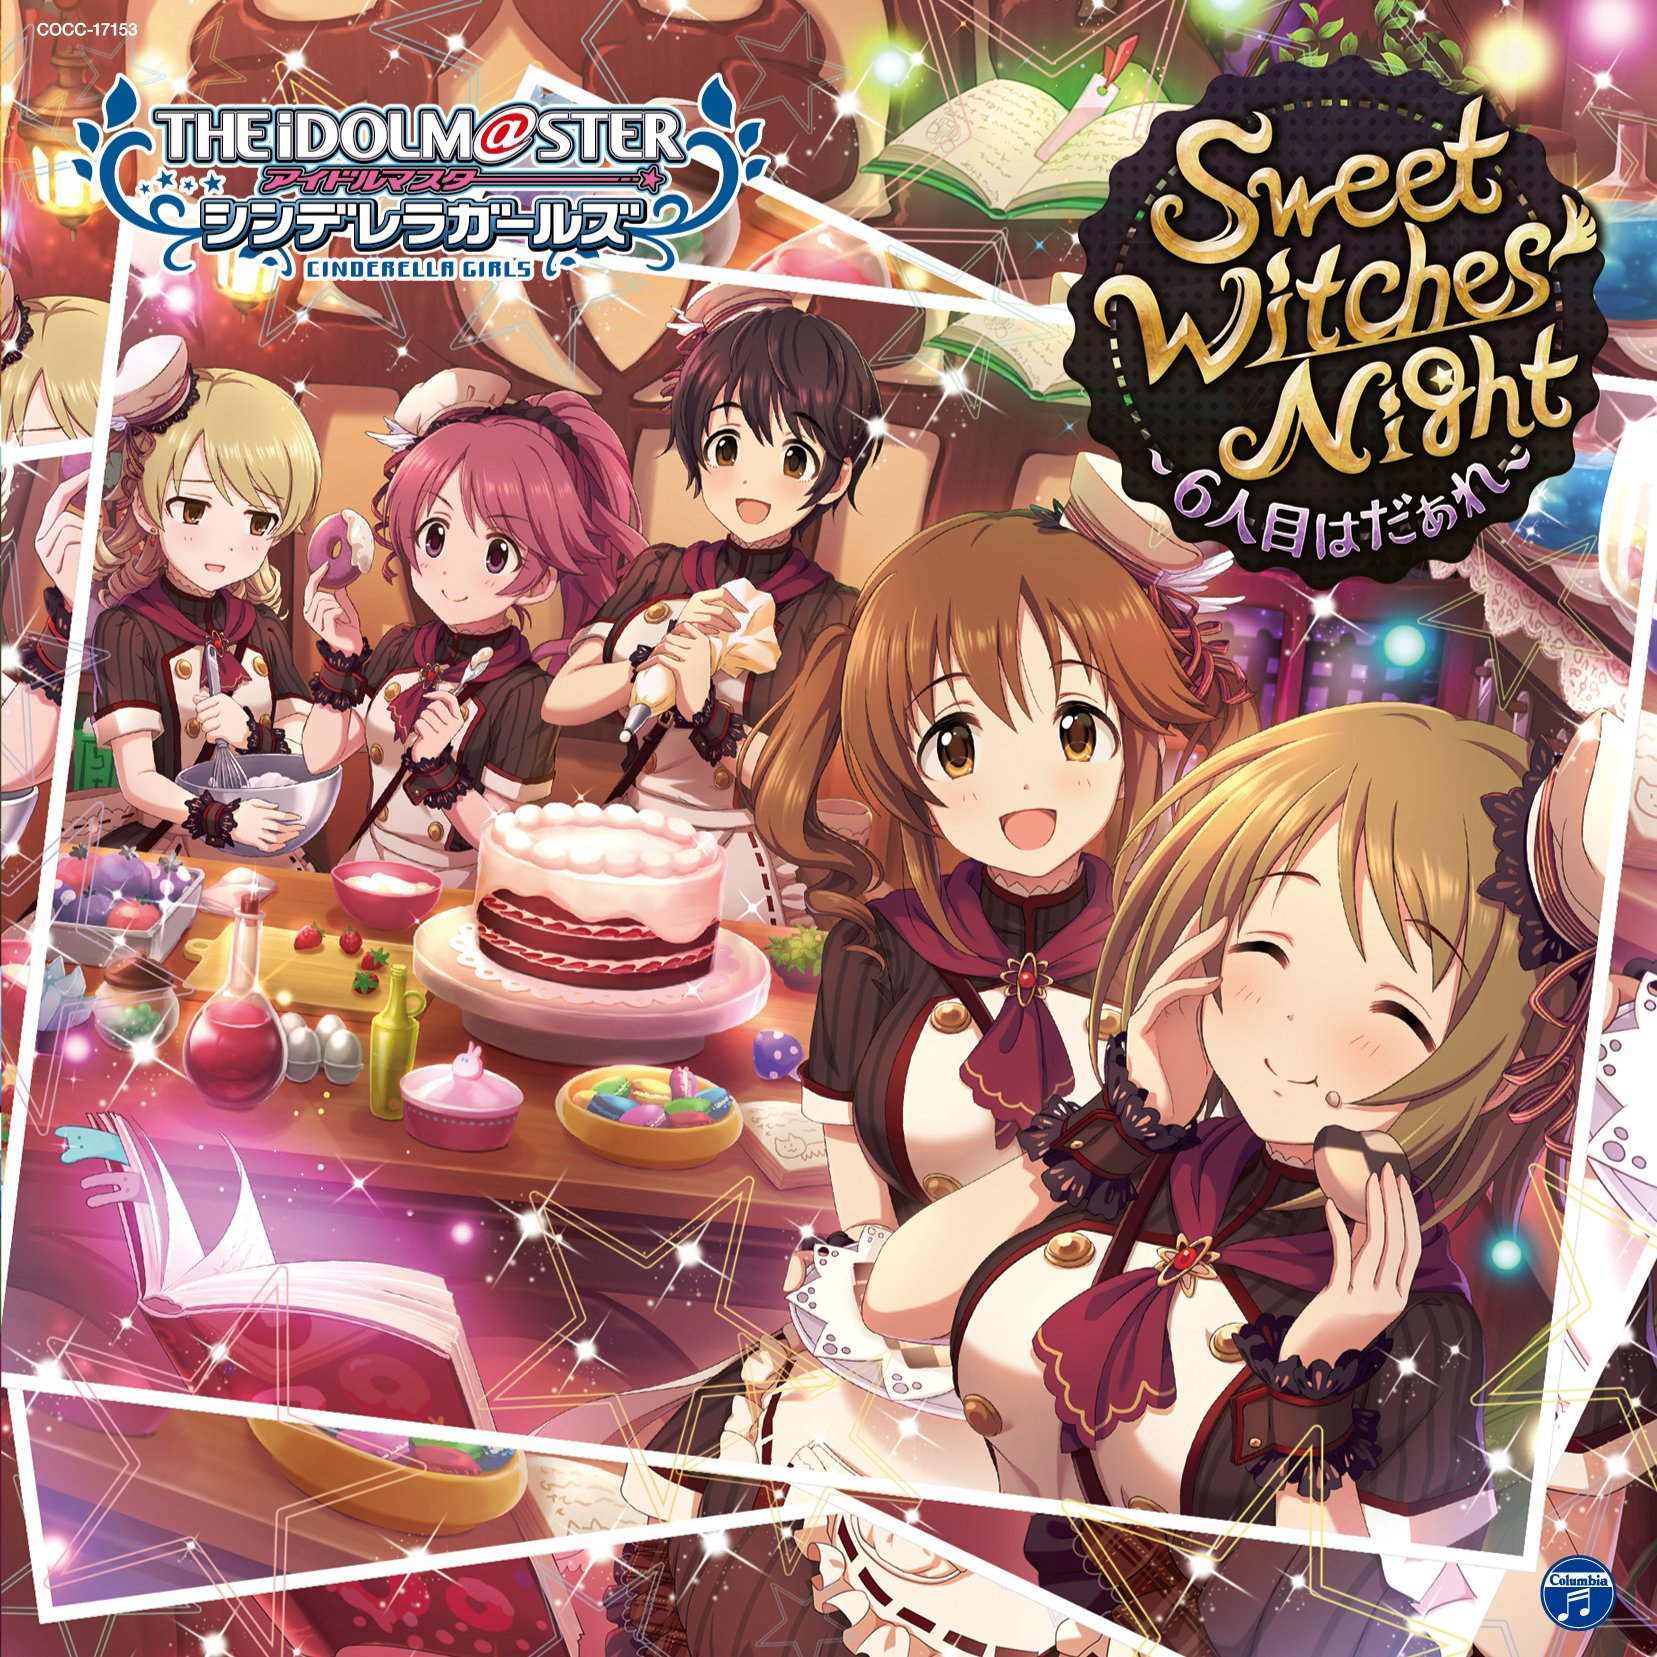 THE IDOLM@STER CINDERELLA GIRLS STARLIGHT MASTER 13